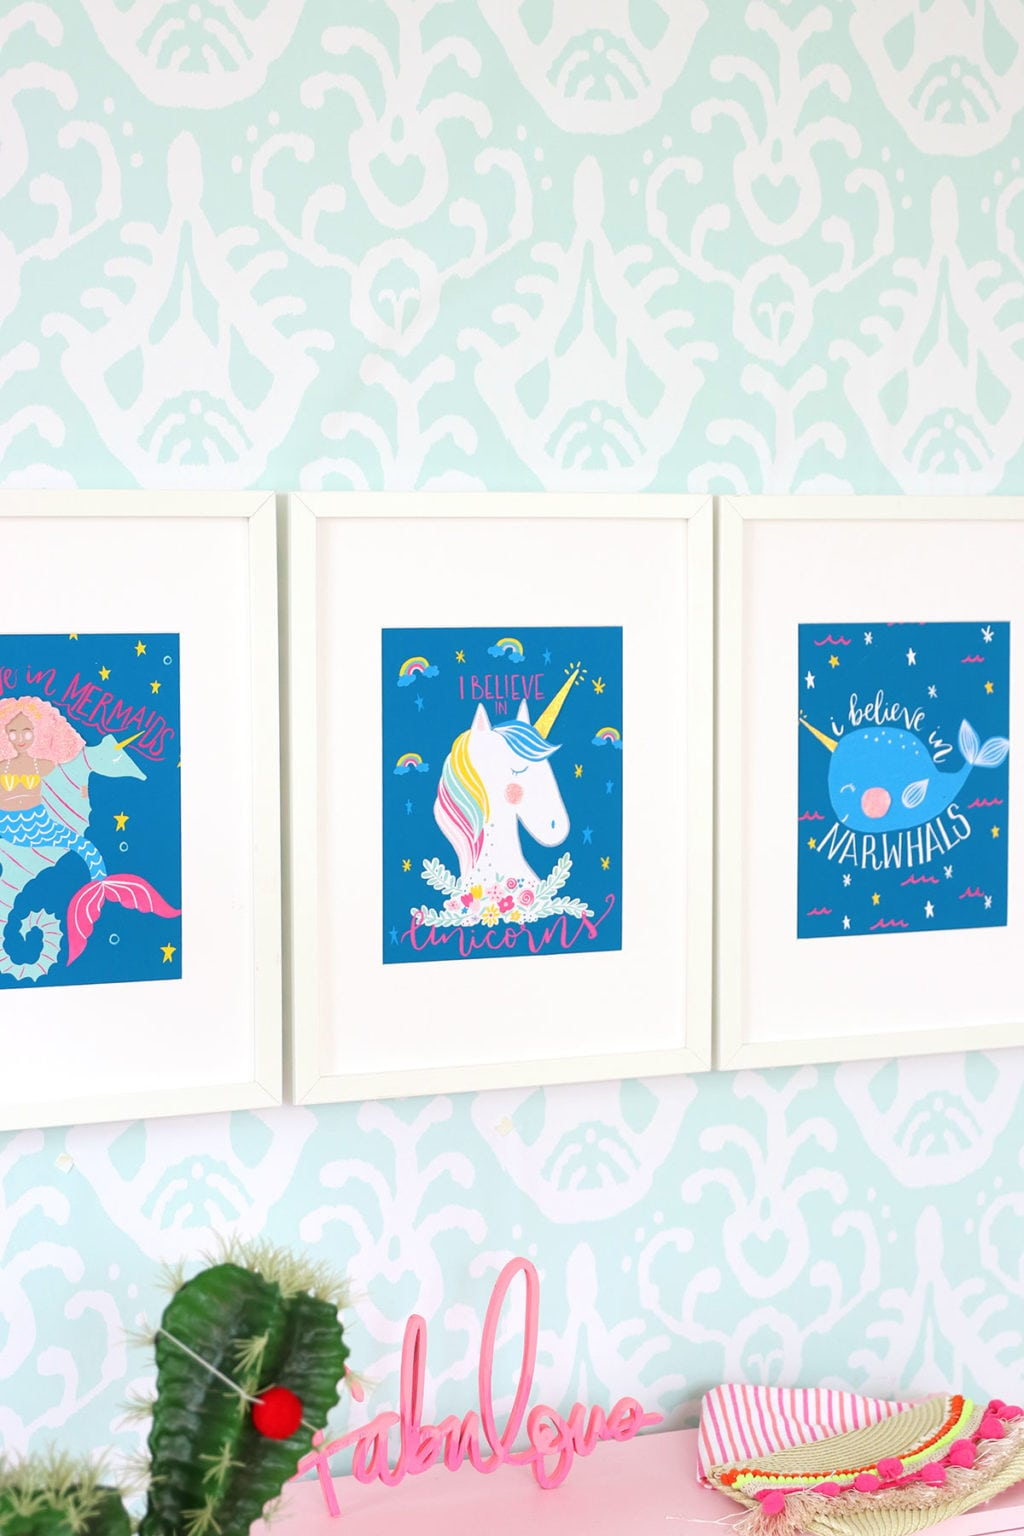 Print your own whimsical wall art using the Canon TS8020 Printer